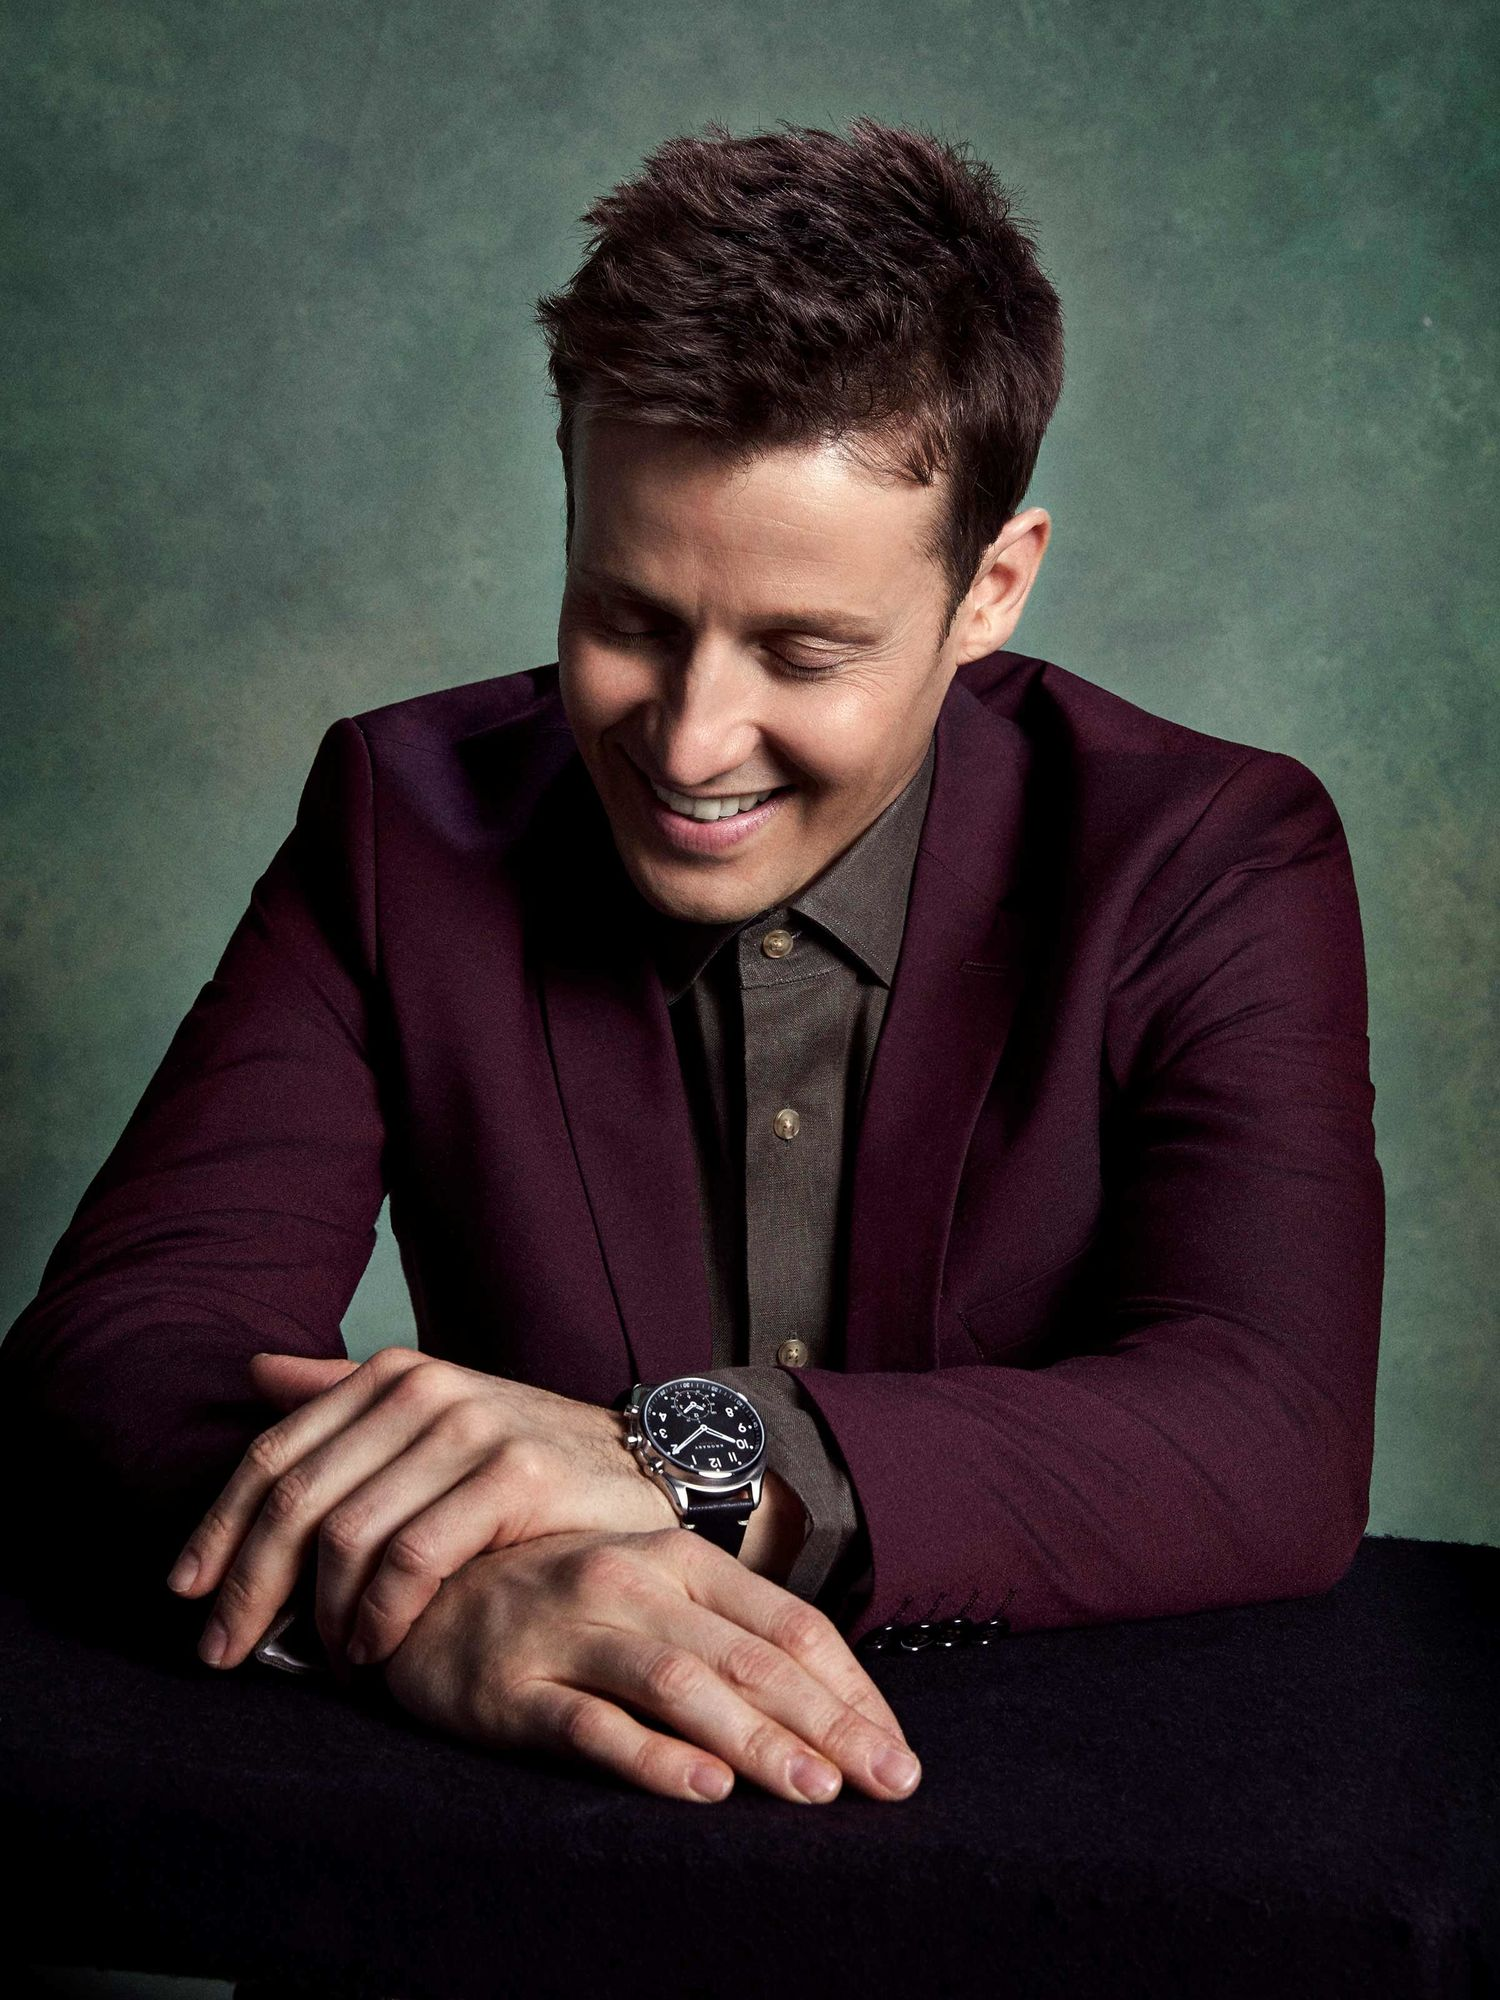 Will Estes in a maroon sports jacket